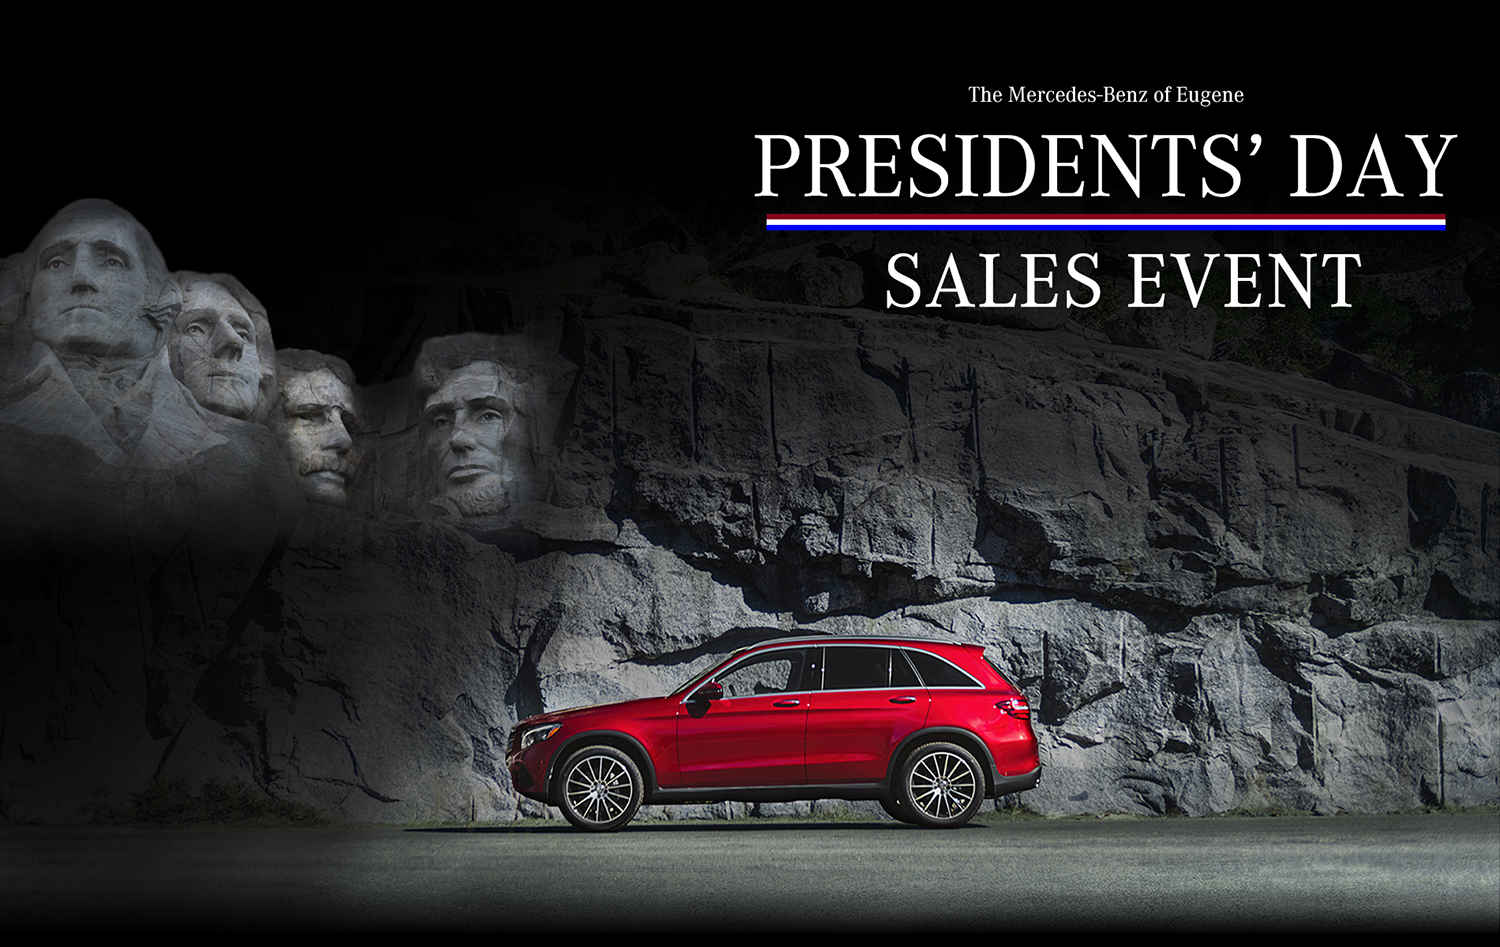 Mercedes-benz of Eugene presidents' day sales event